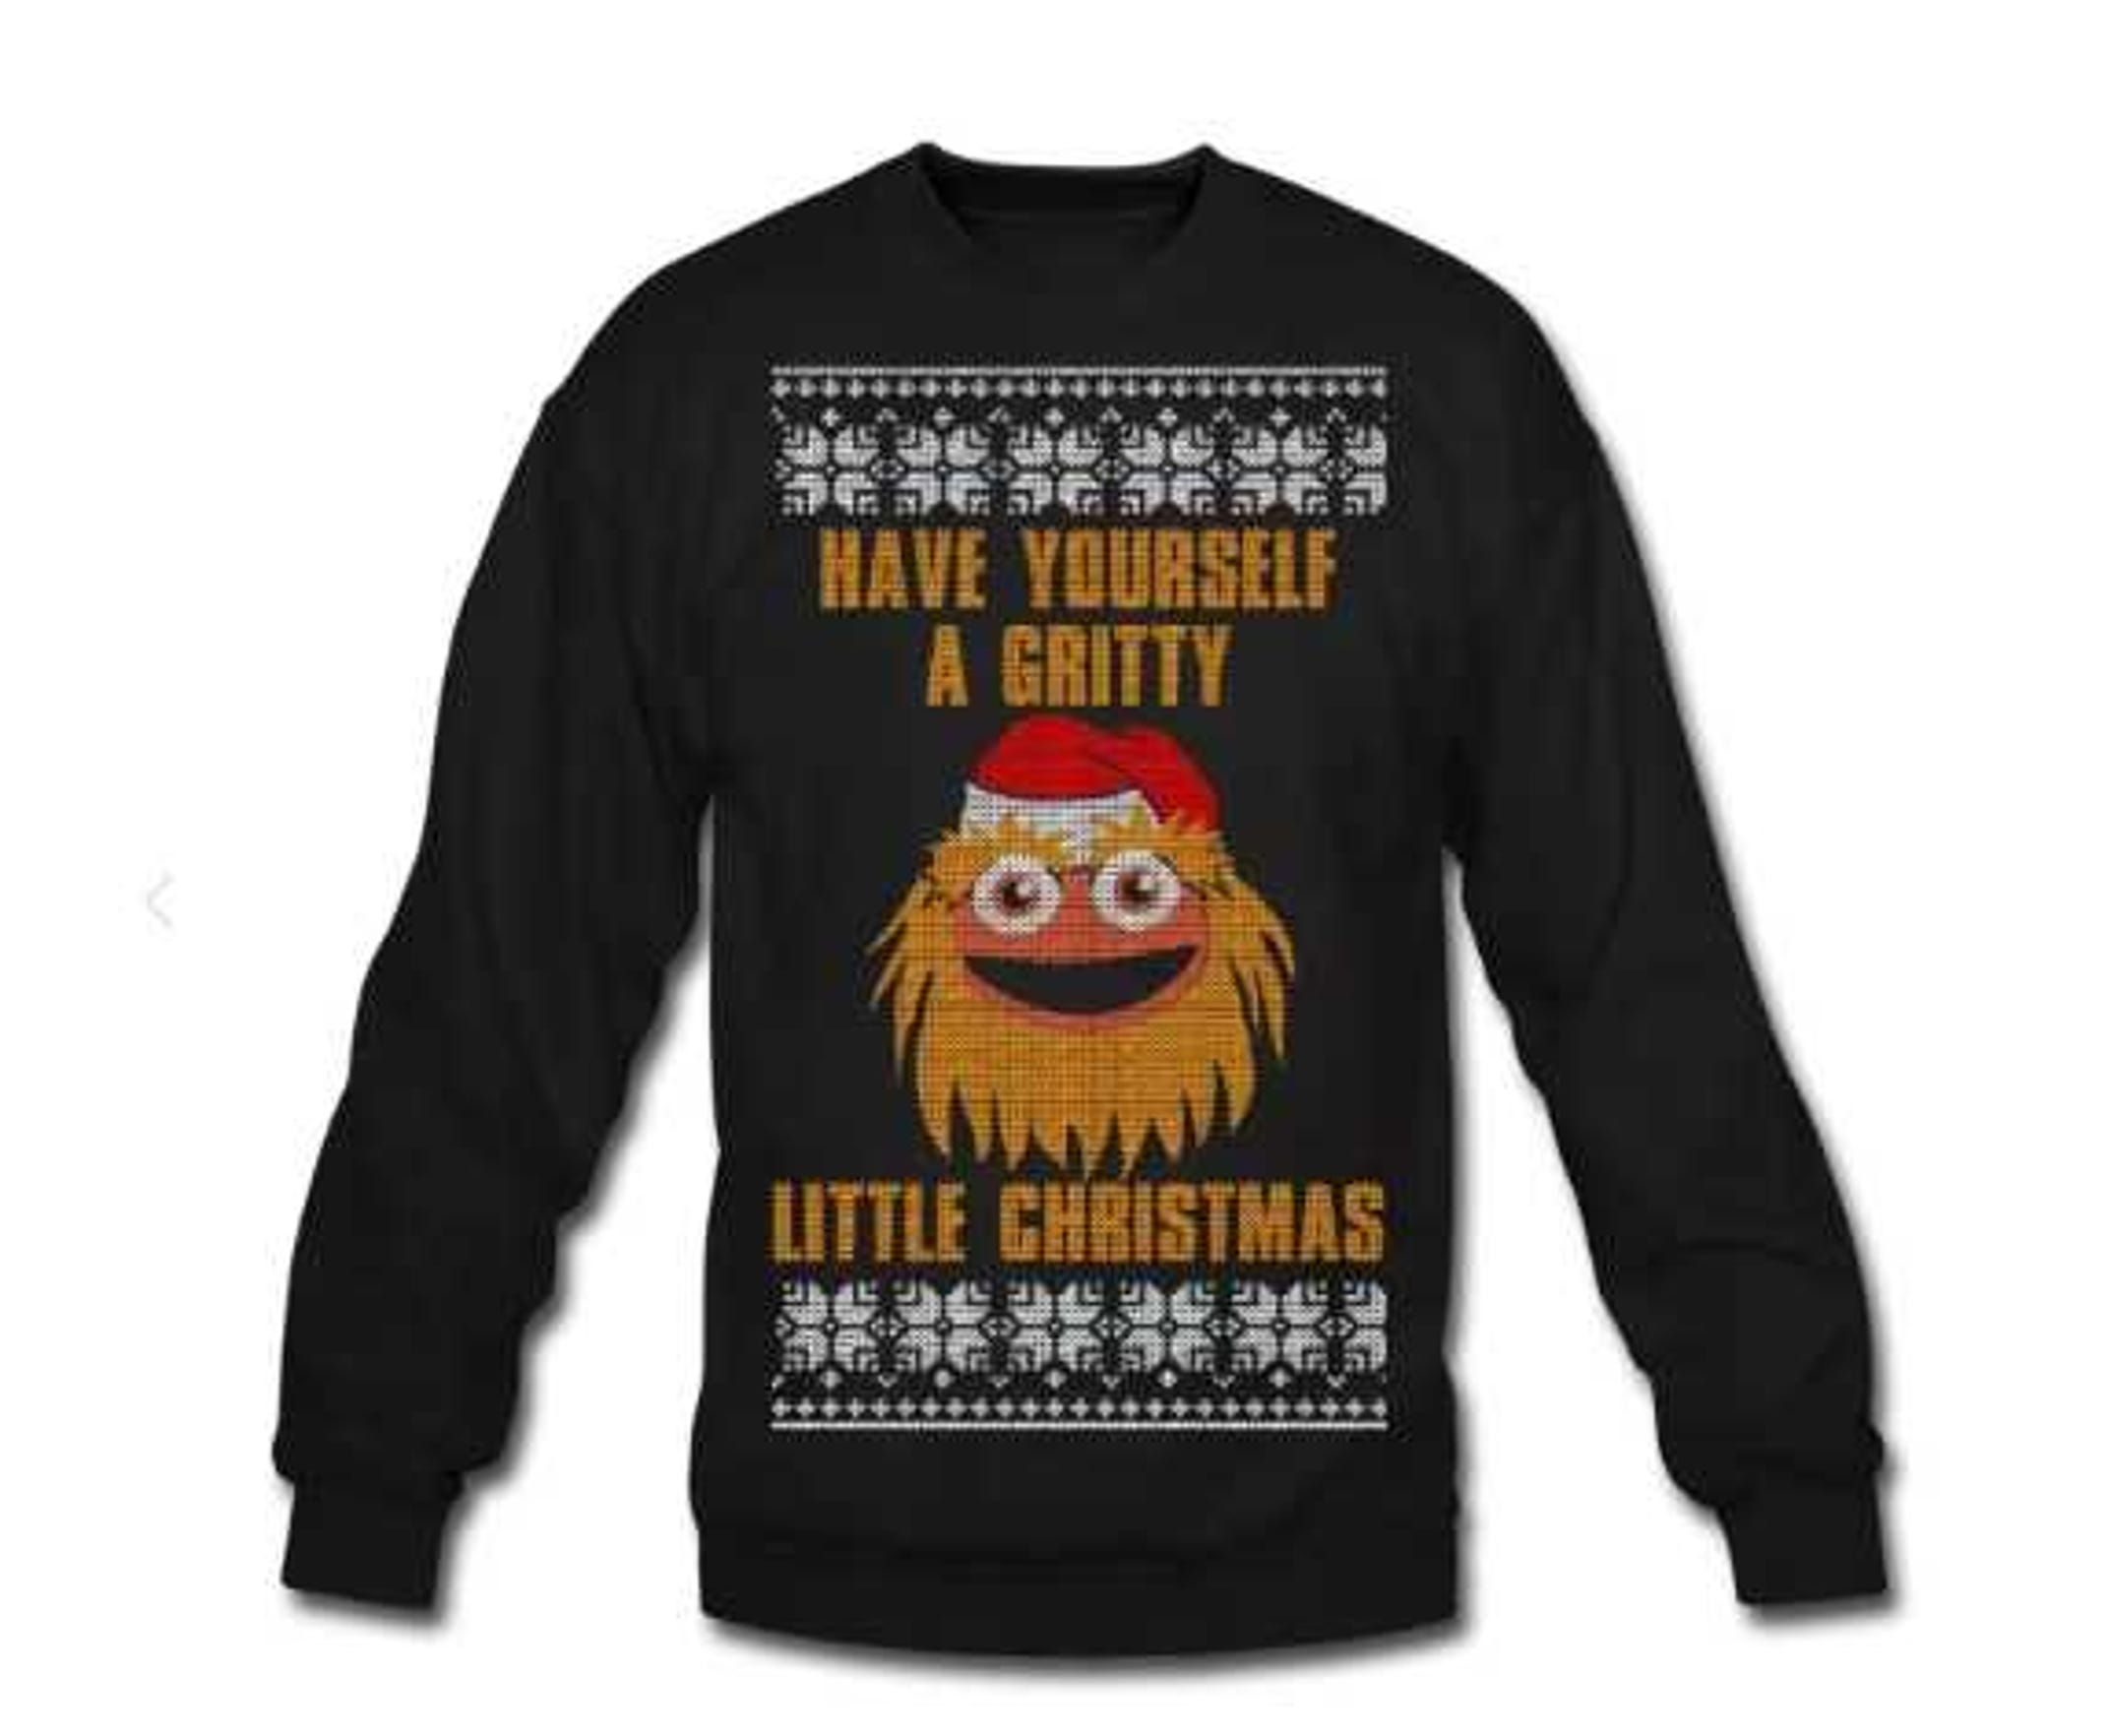 Get this Gritty Christmas sweater and a bunch of other Philly sports sweaters for the holidays at phlycity.com.